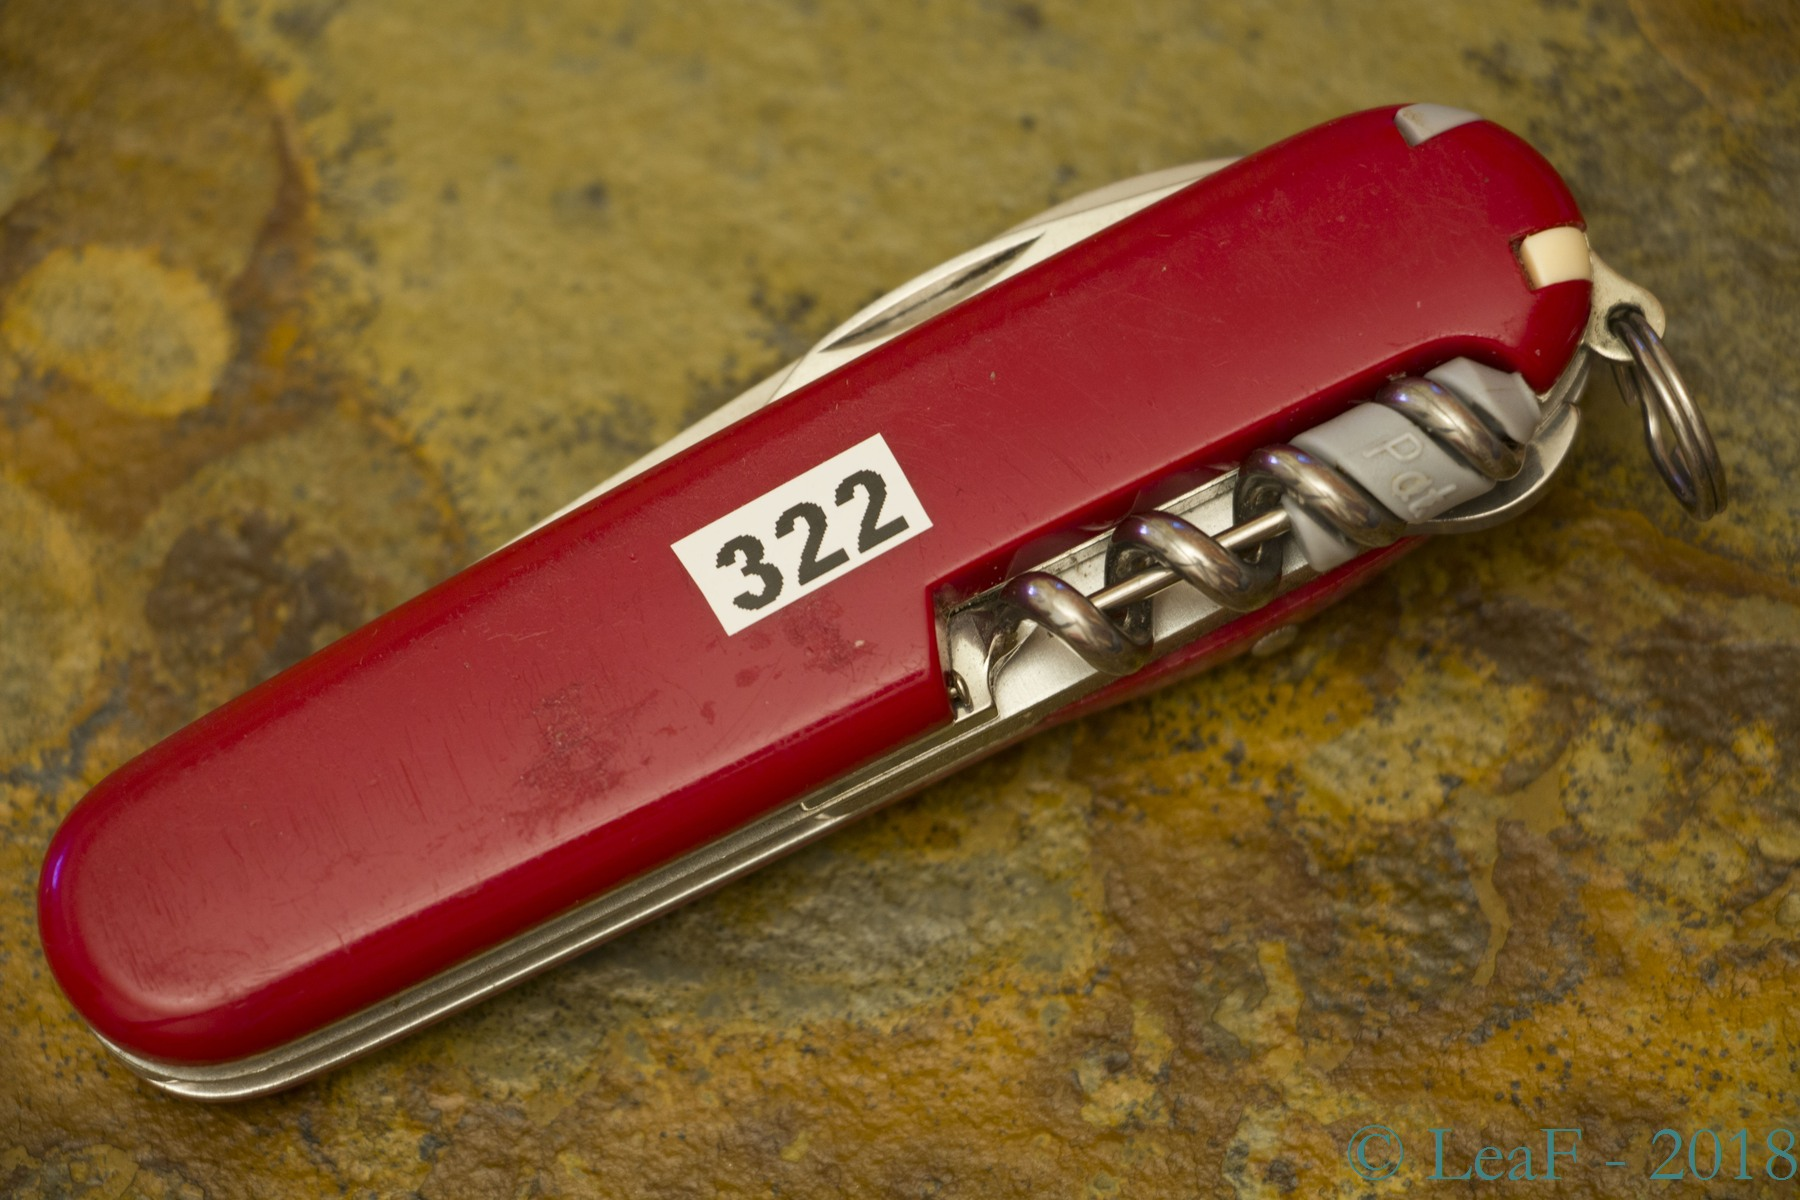 322 Timekeeper Leaf S Victorinox Knives Collection